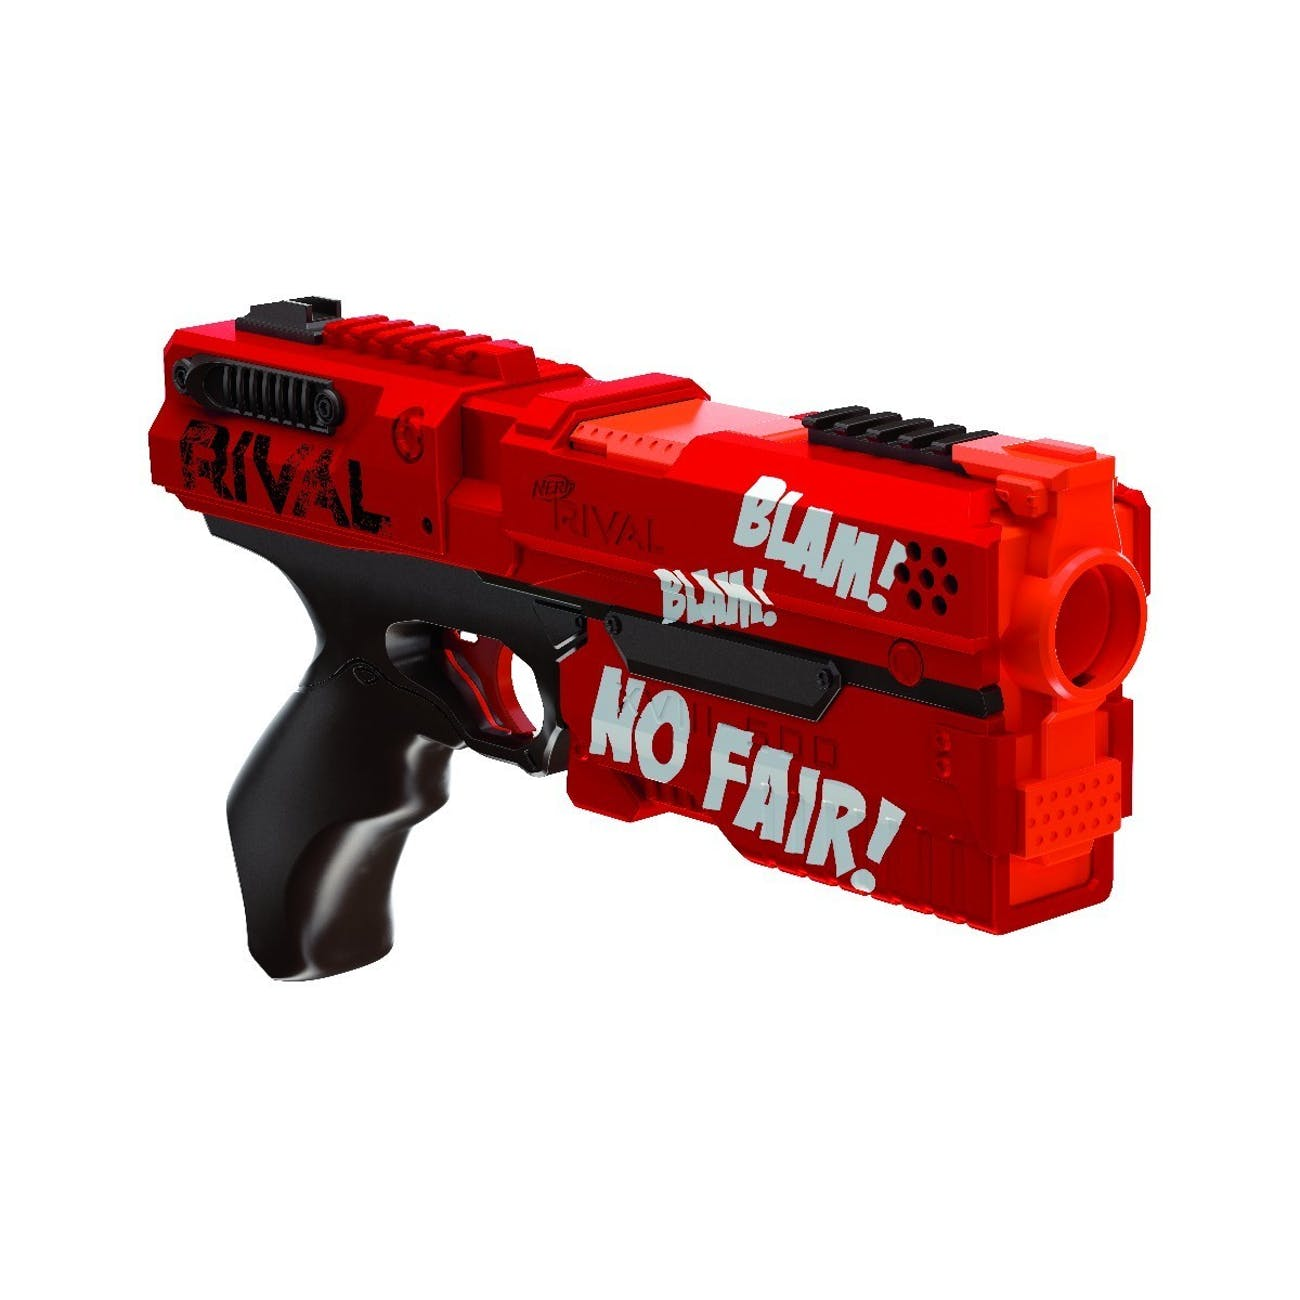 The Deadpool-themed Nerf gun is perhaps the most intense-looking Nerf gun ever.